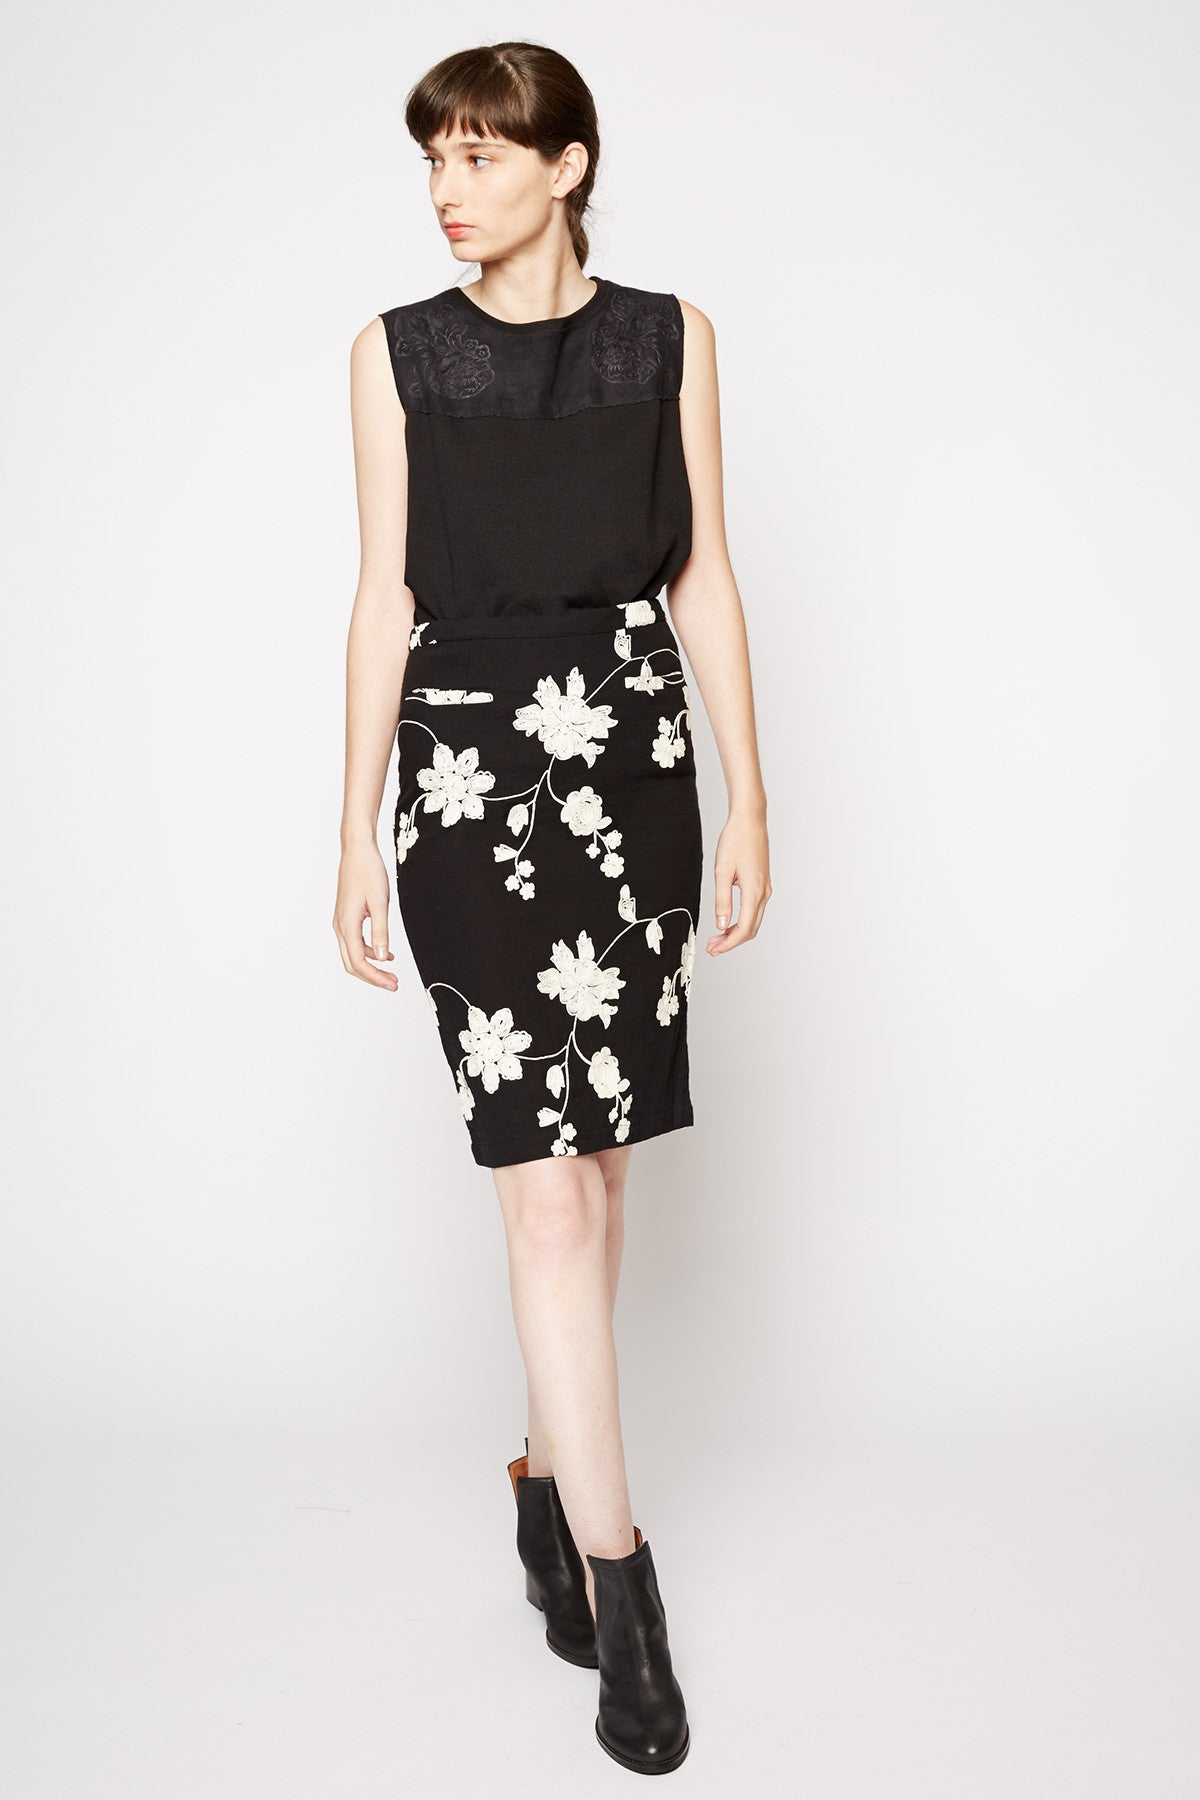 Tulle Below the Knee Pencil Skirt